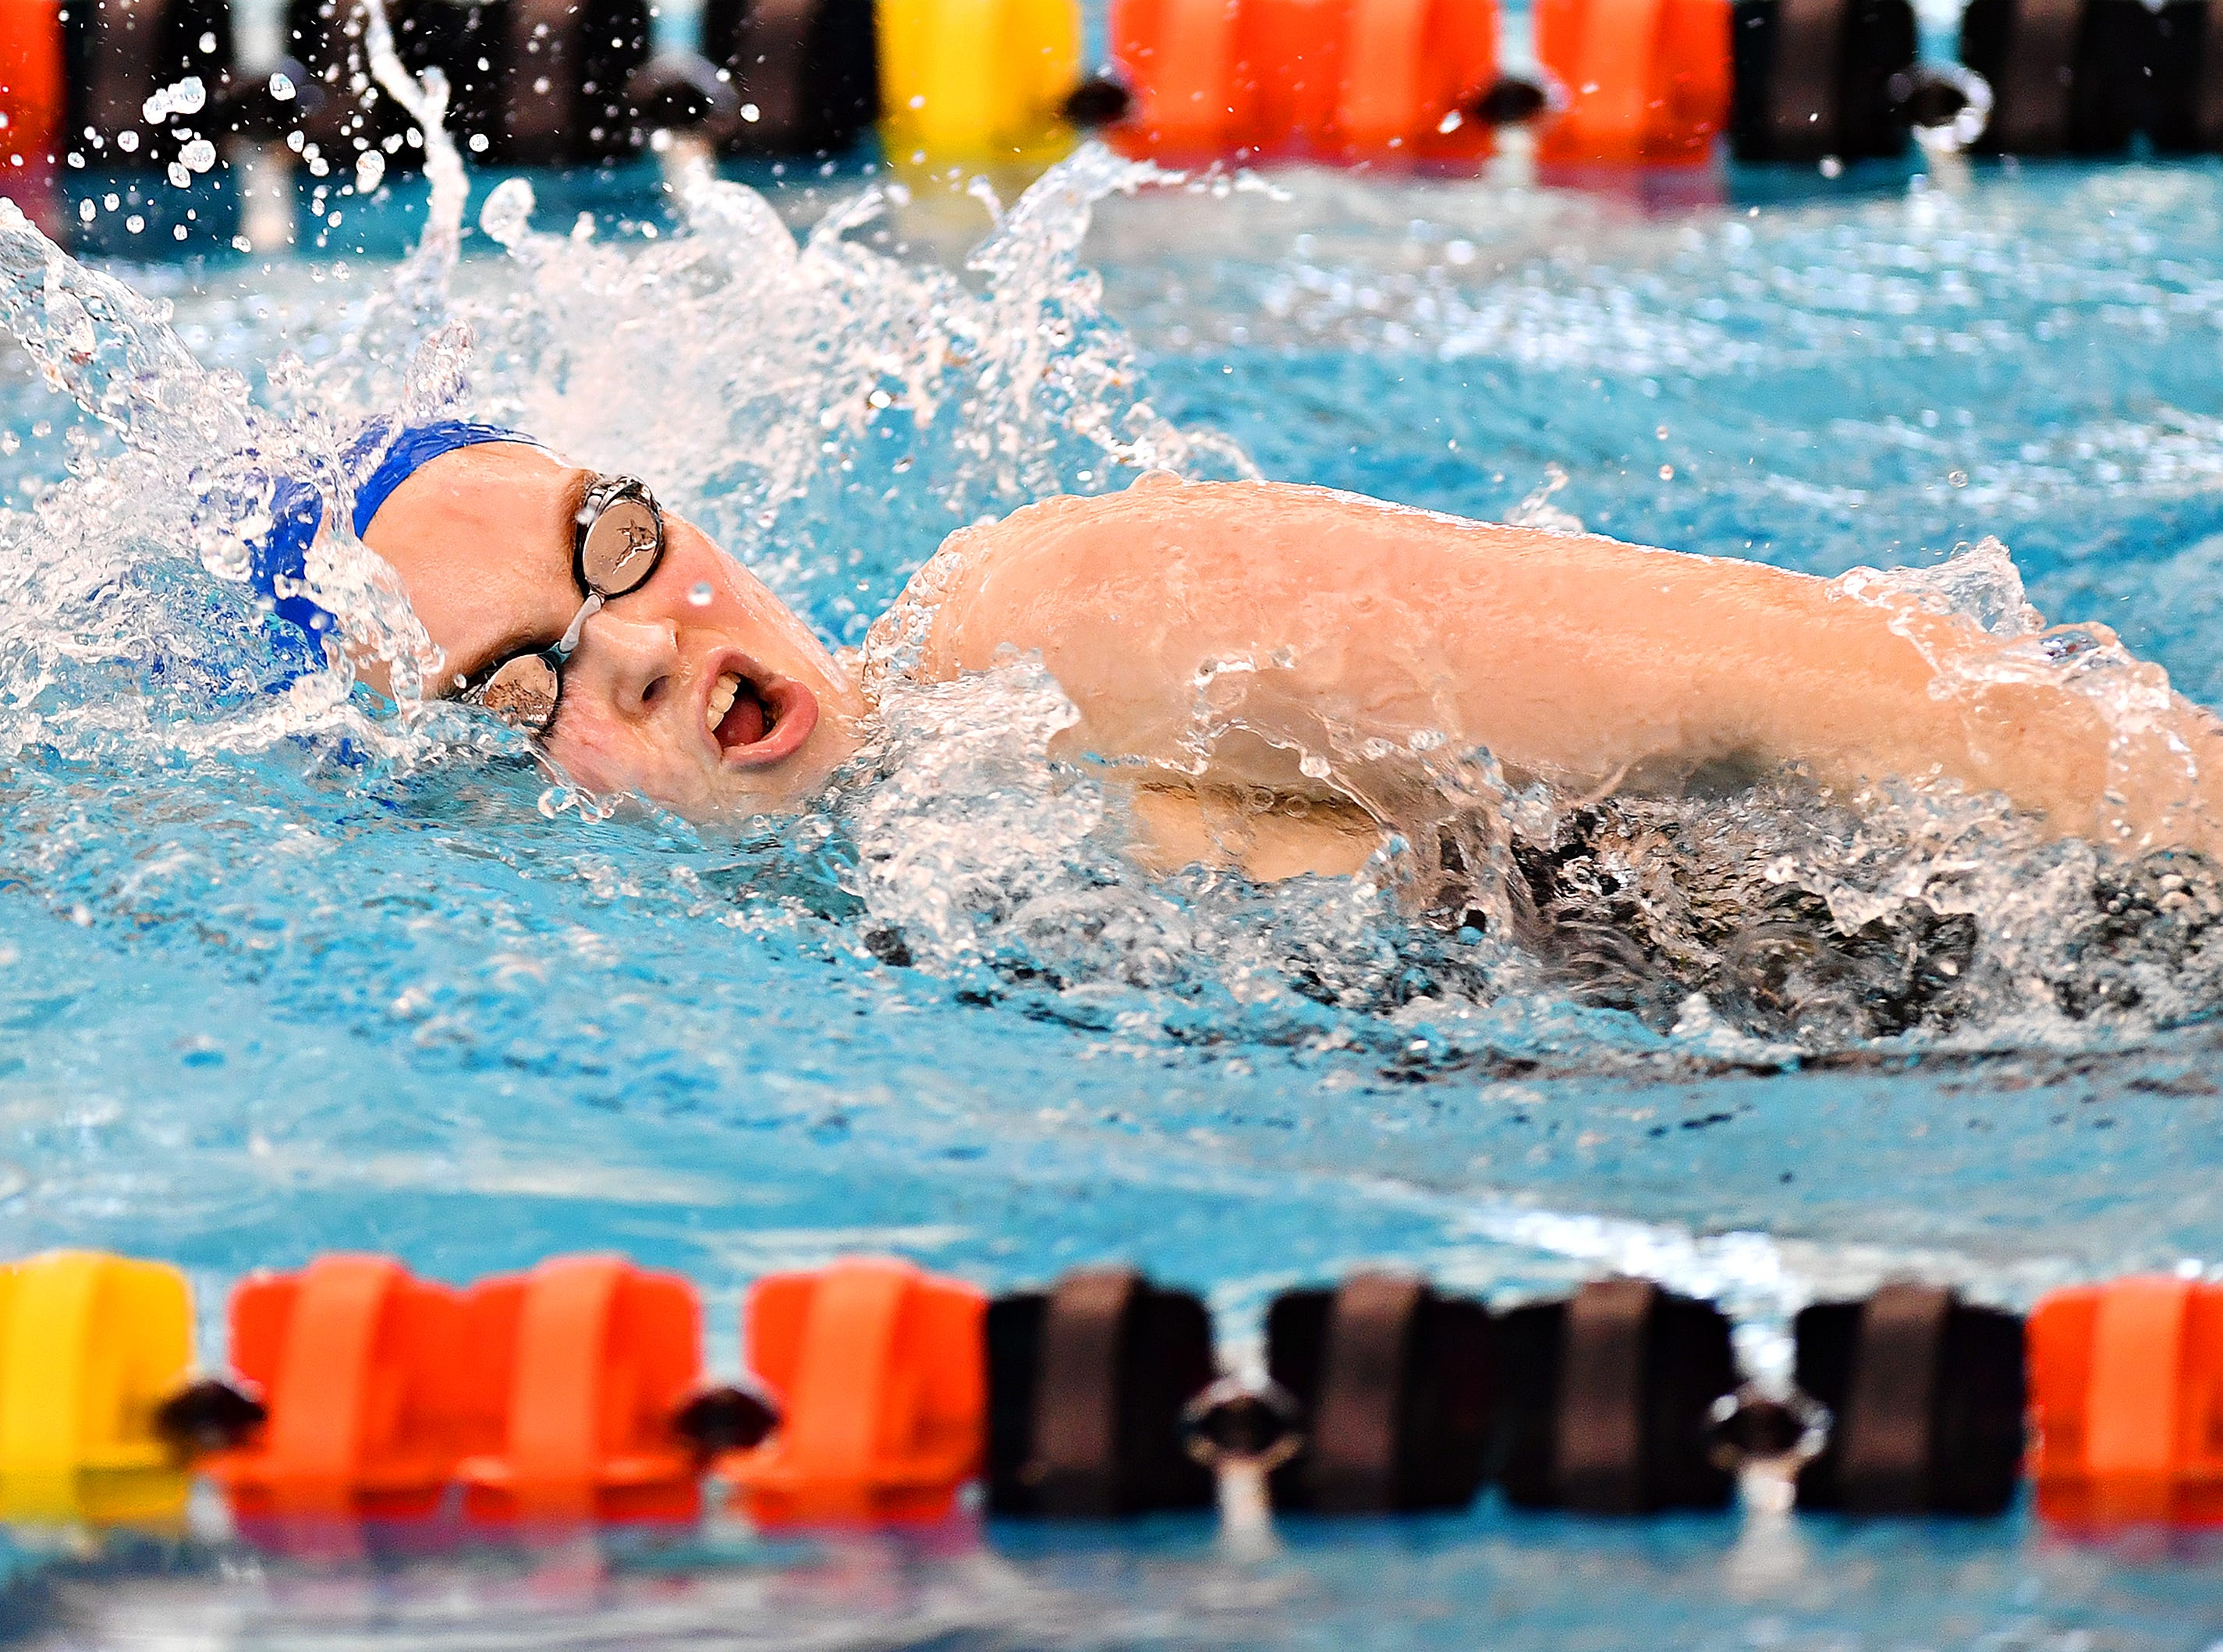 Spring Grove's Ella C. Calder competes in the 500 Yard Freestyle event during York-Adams League Swimming Championship at Central York High School in Springettsbury Township, Saturday, Feb. 9, 2019. Dawn J. Sagert photo